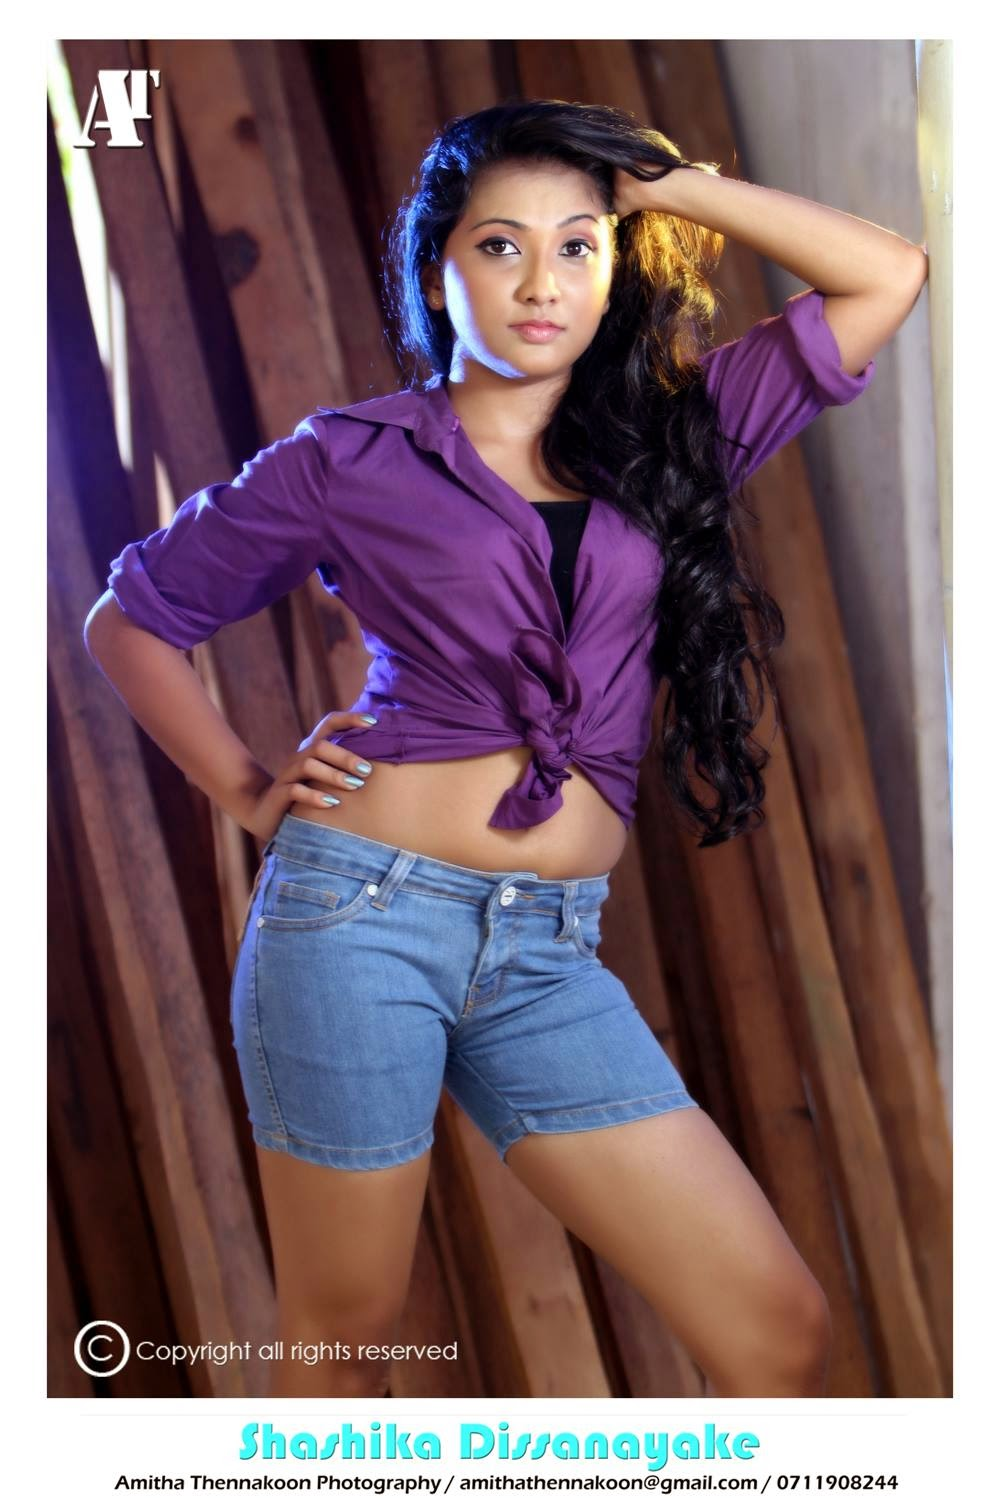 Shashika Dissanayake tight hot